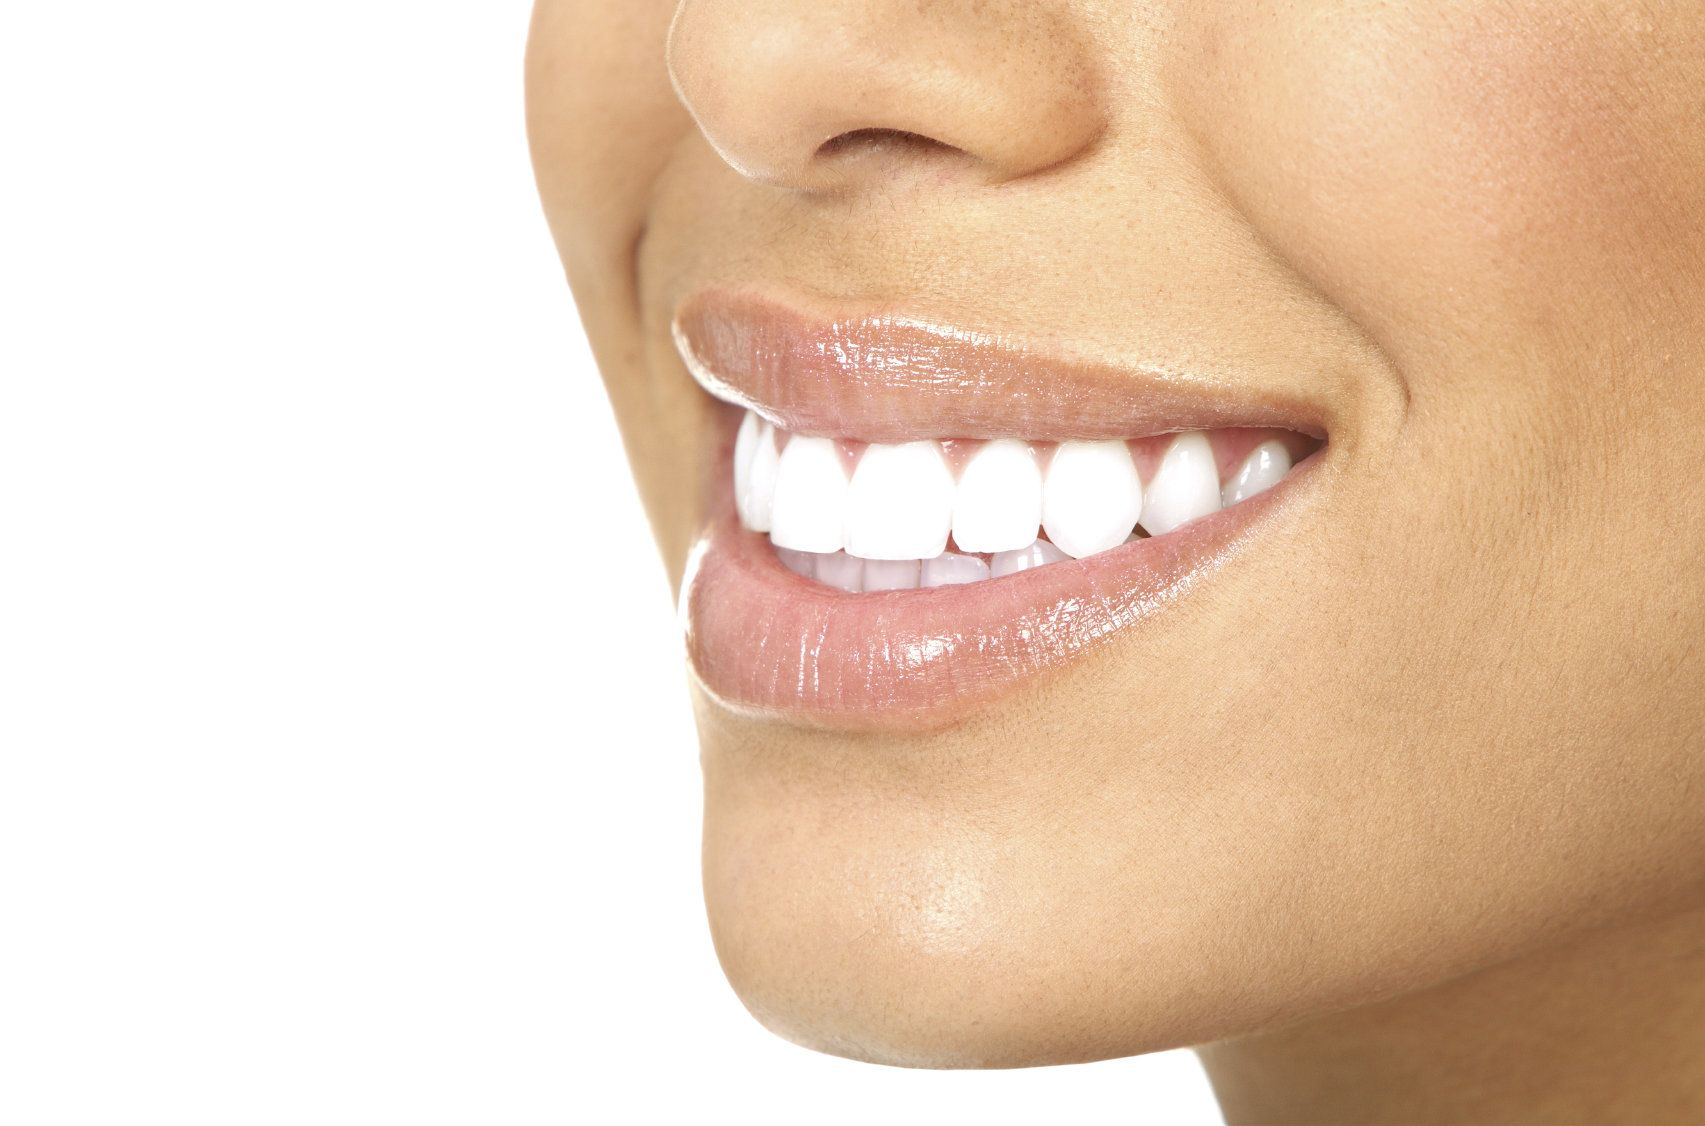 Patient with bright, white teeth